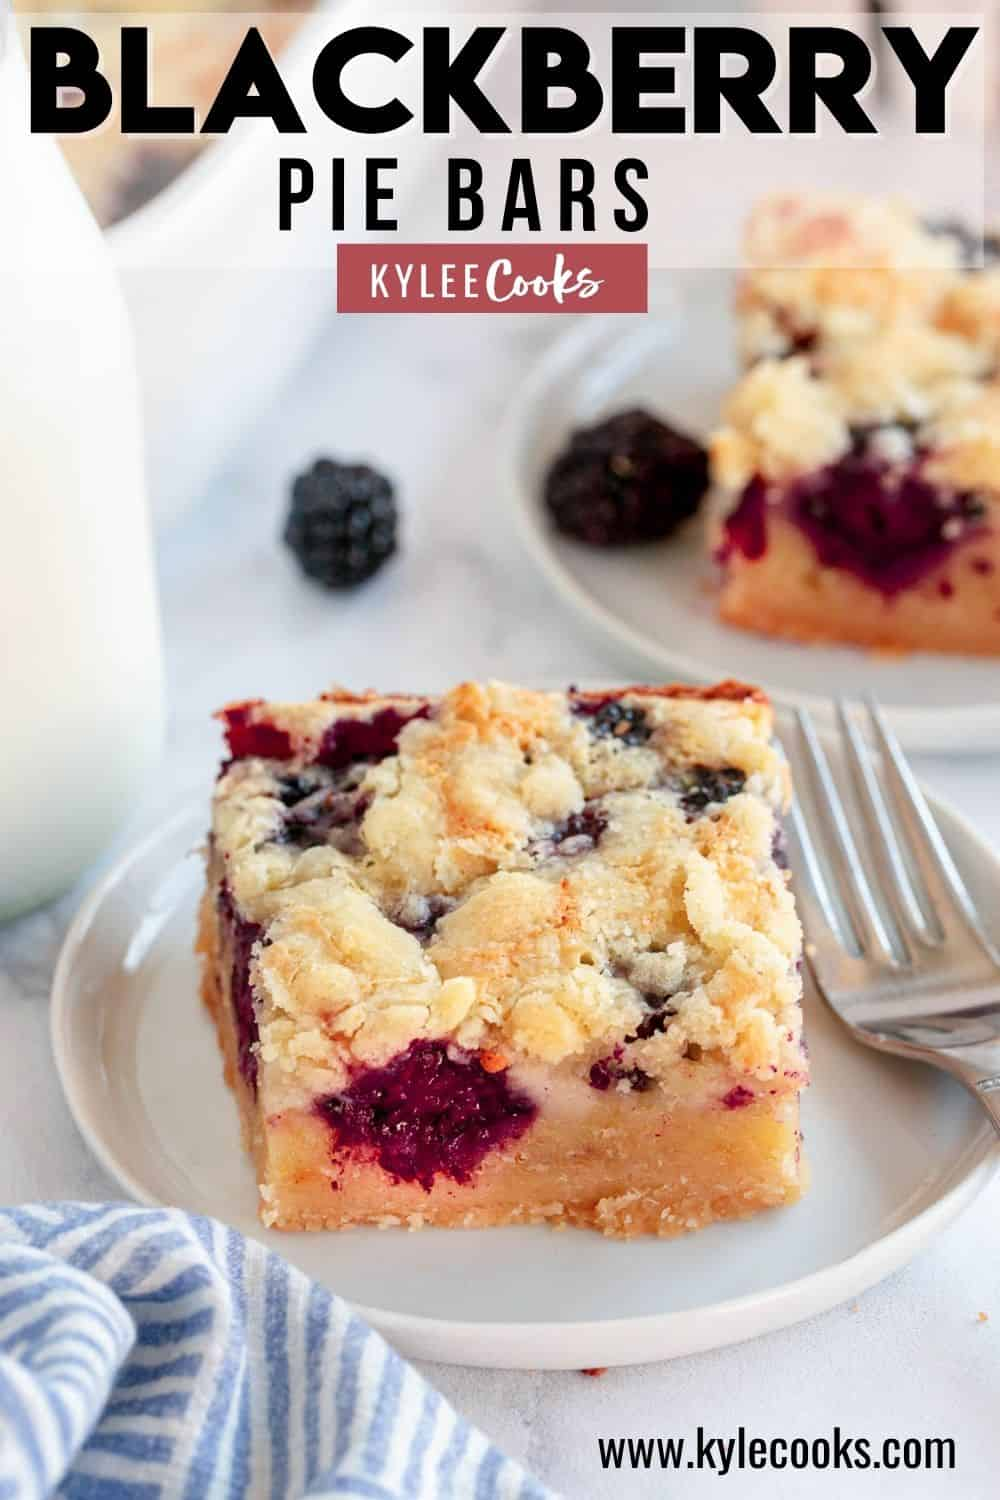 blackberry pie bars on a white plate with recipe title in text overlay